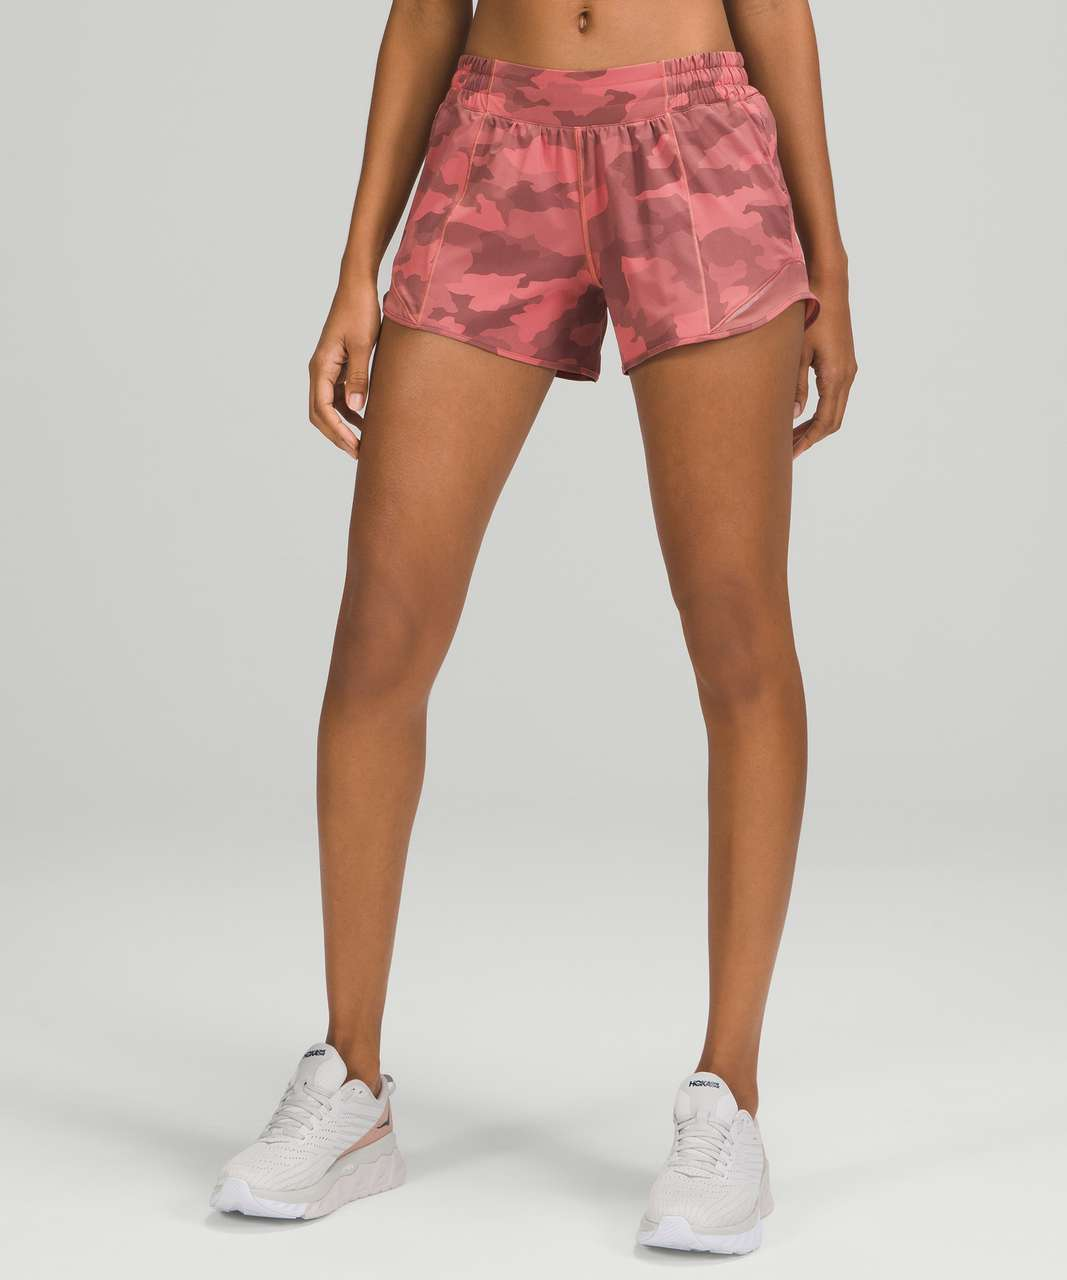 """Lululemon Hotty Hot Low Rise Short 4"""" - Heritage 365 Camo Brier Rose Multi / Spiced Chai"""